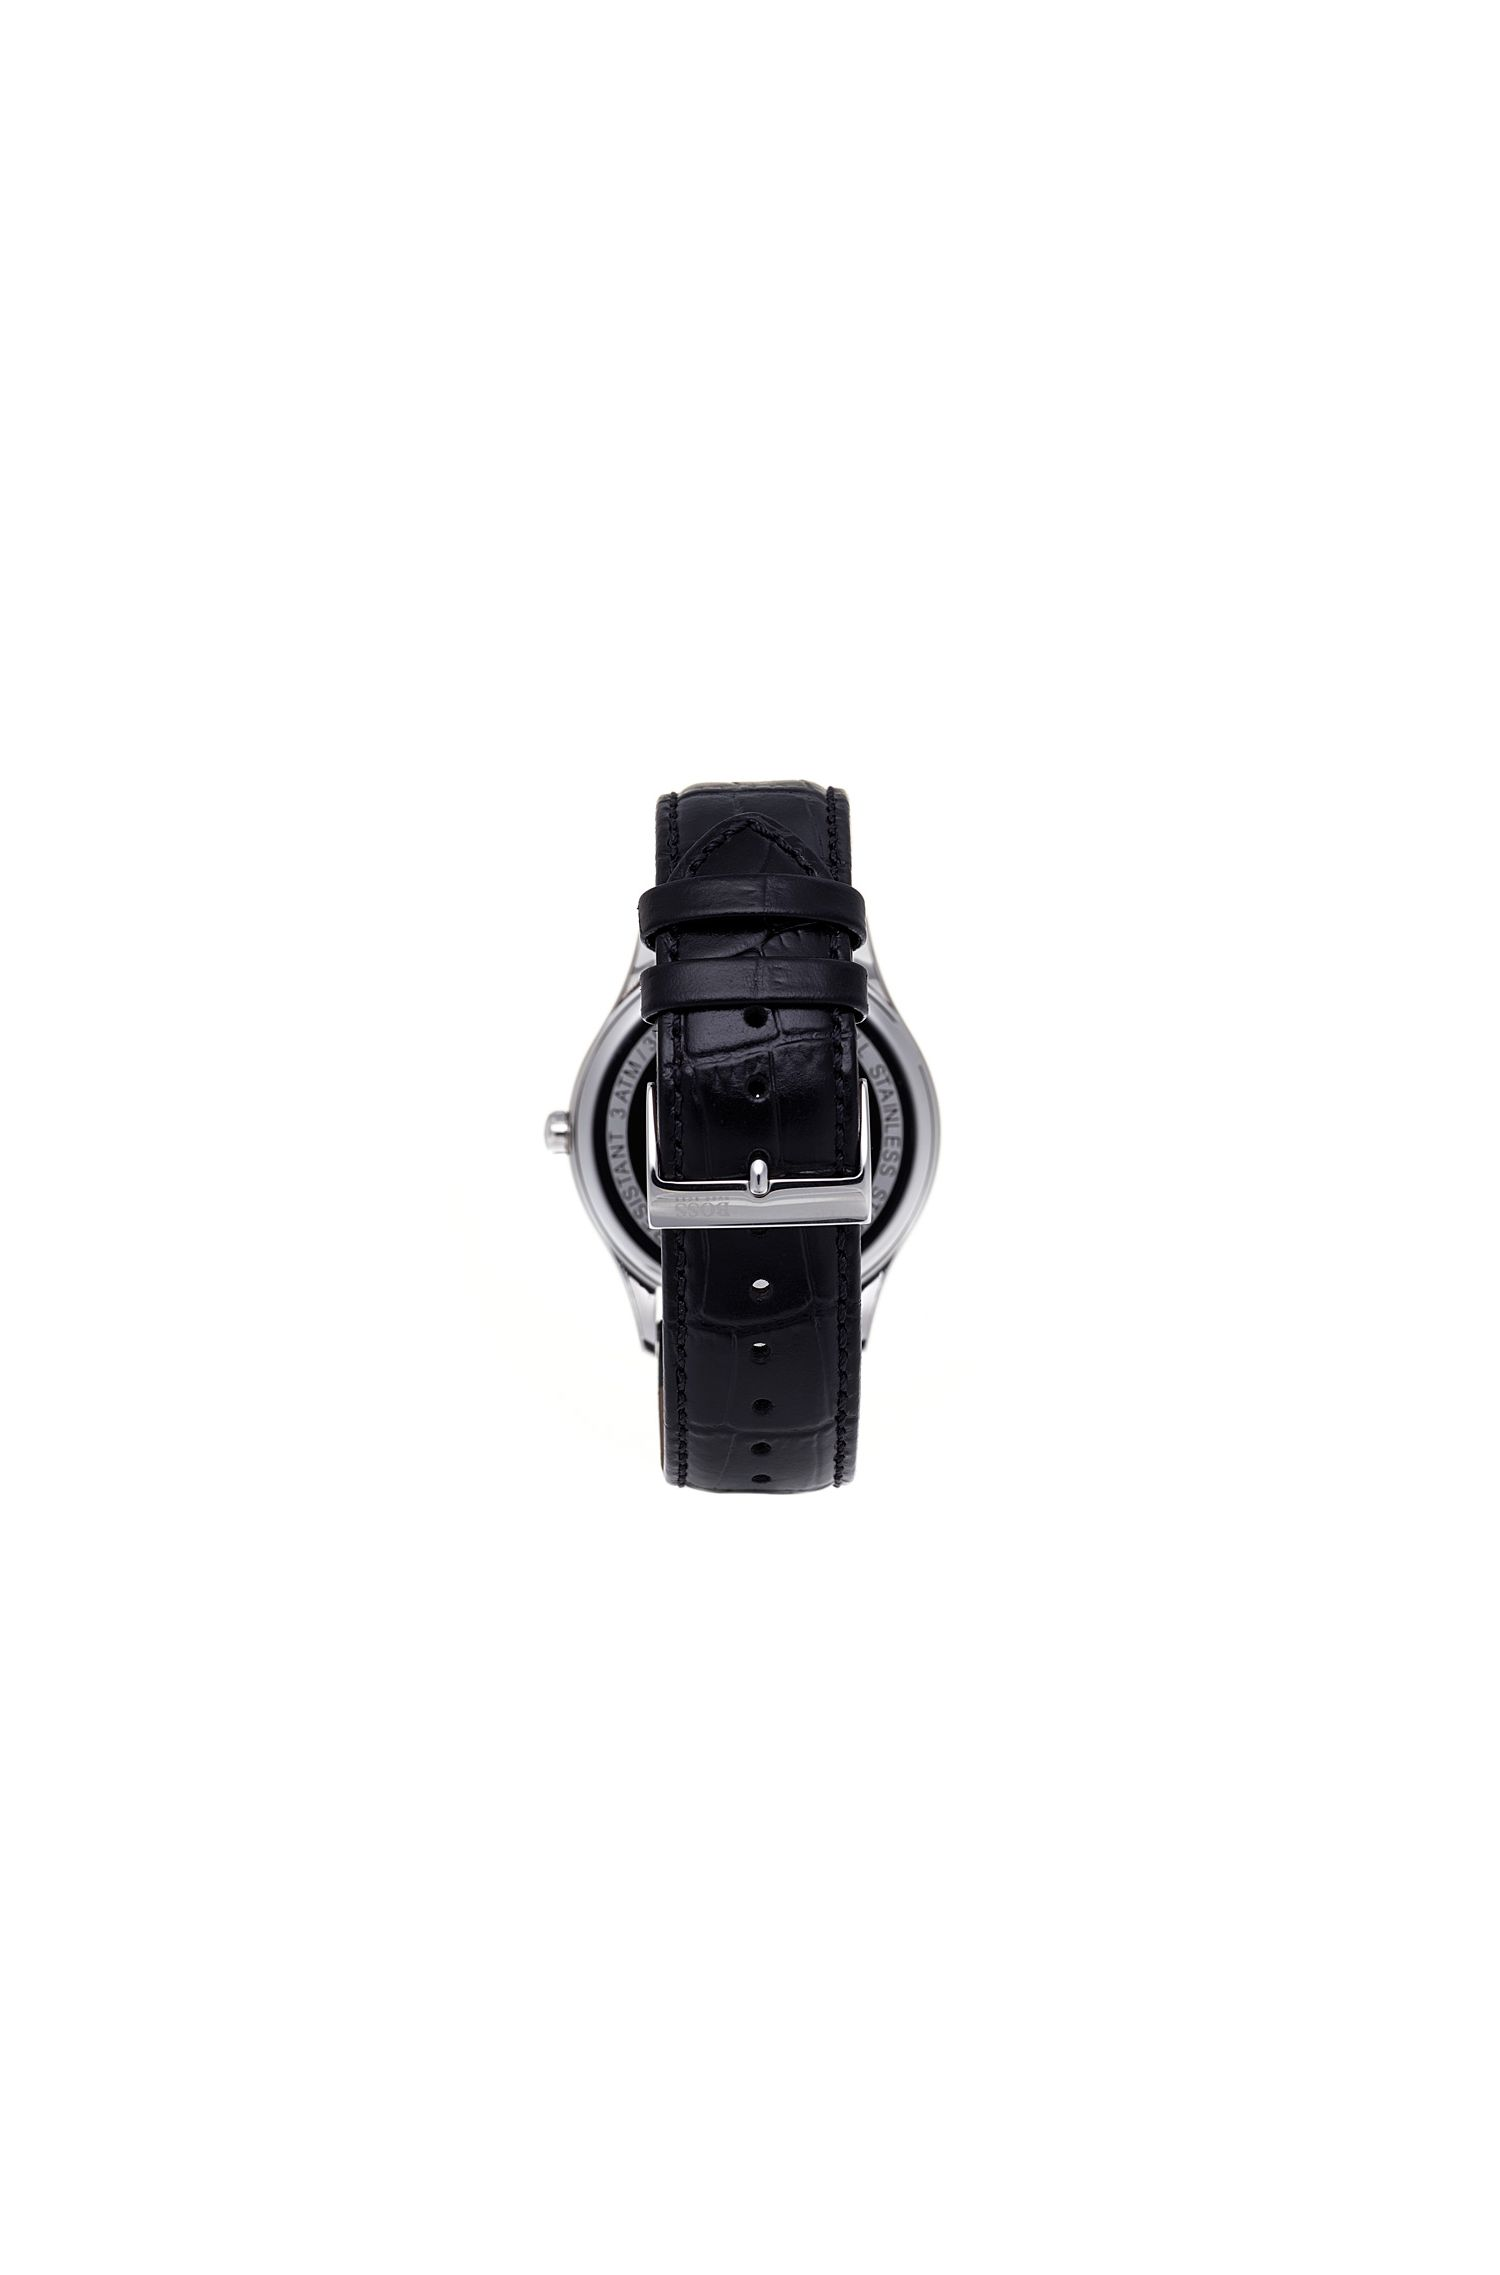 Govenor Casual Sport, Leather Strap Watch | 1513520, Assorted-Pre-Pack